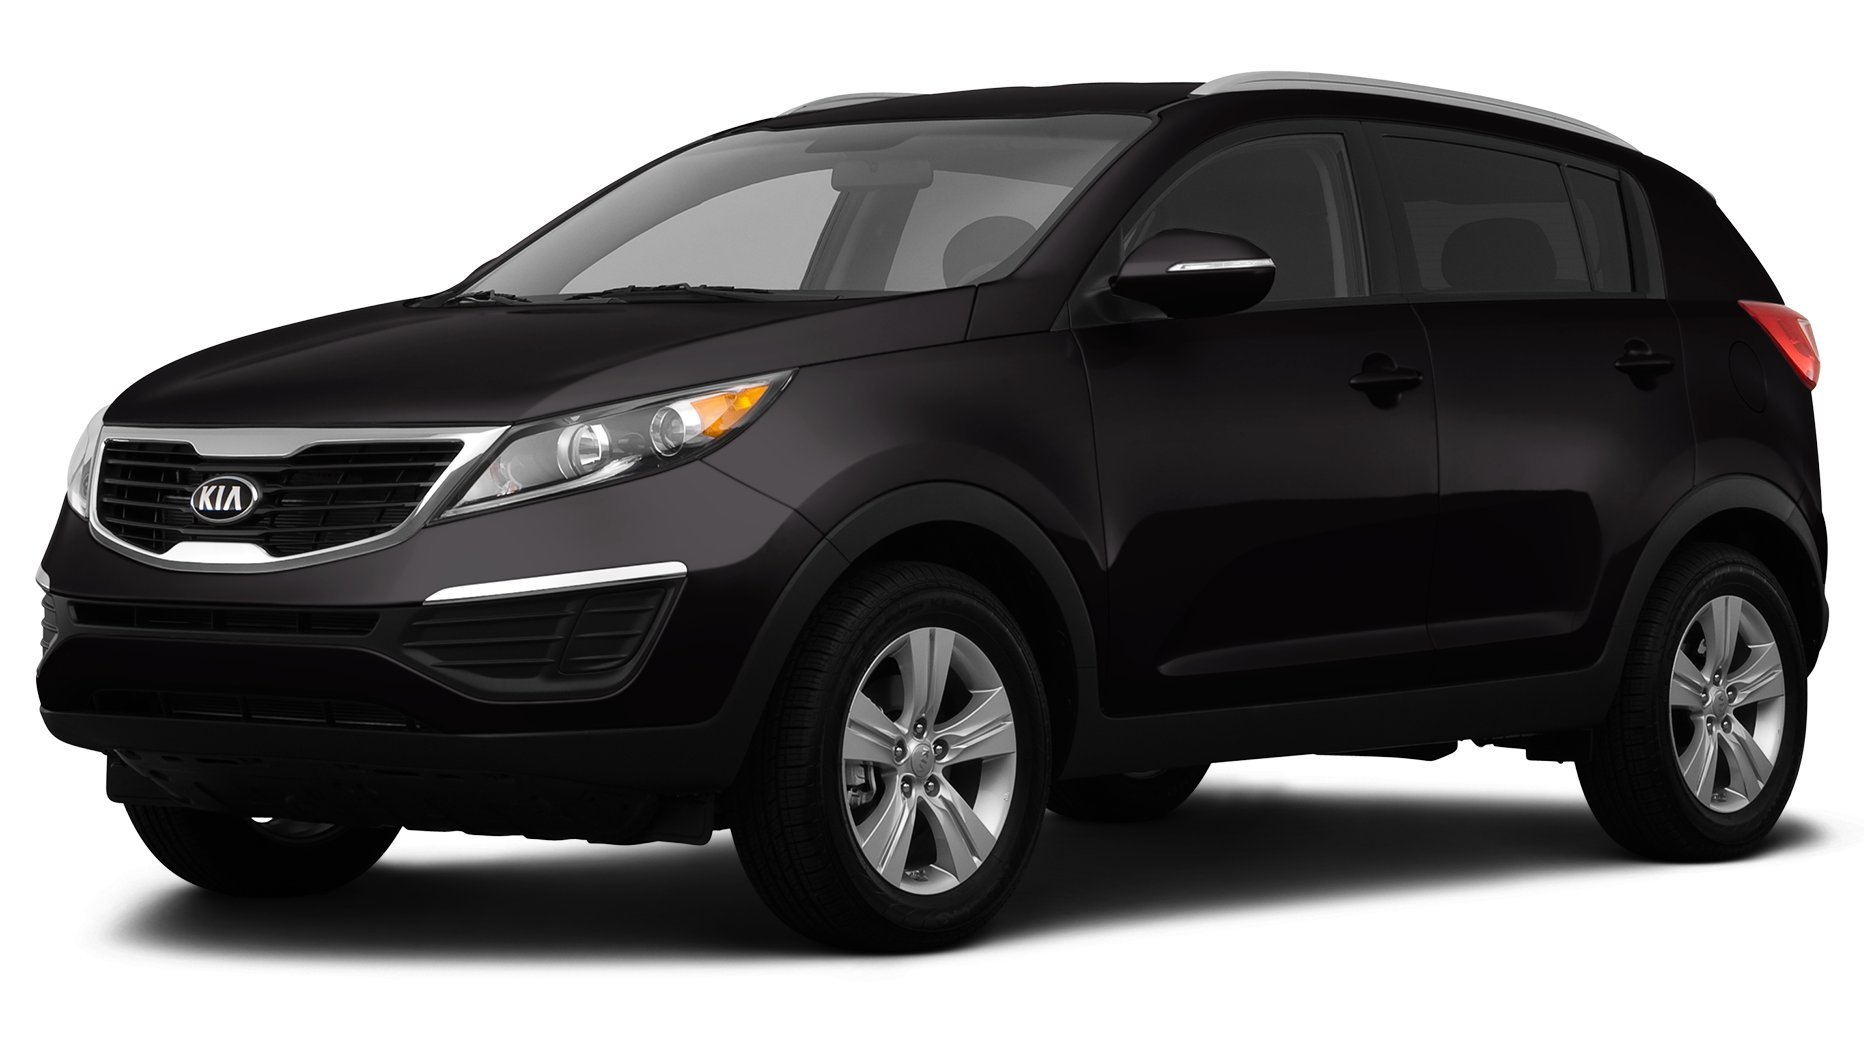 Amazon.com: 2013 Kia Sportage Reviews, Images, And Specs